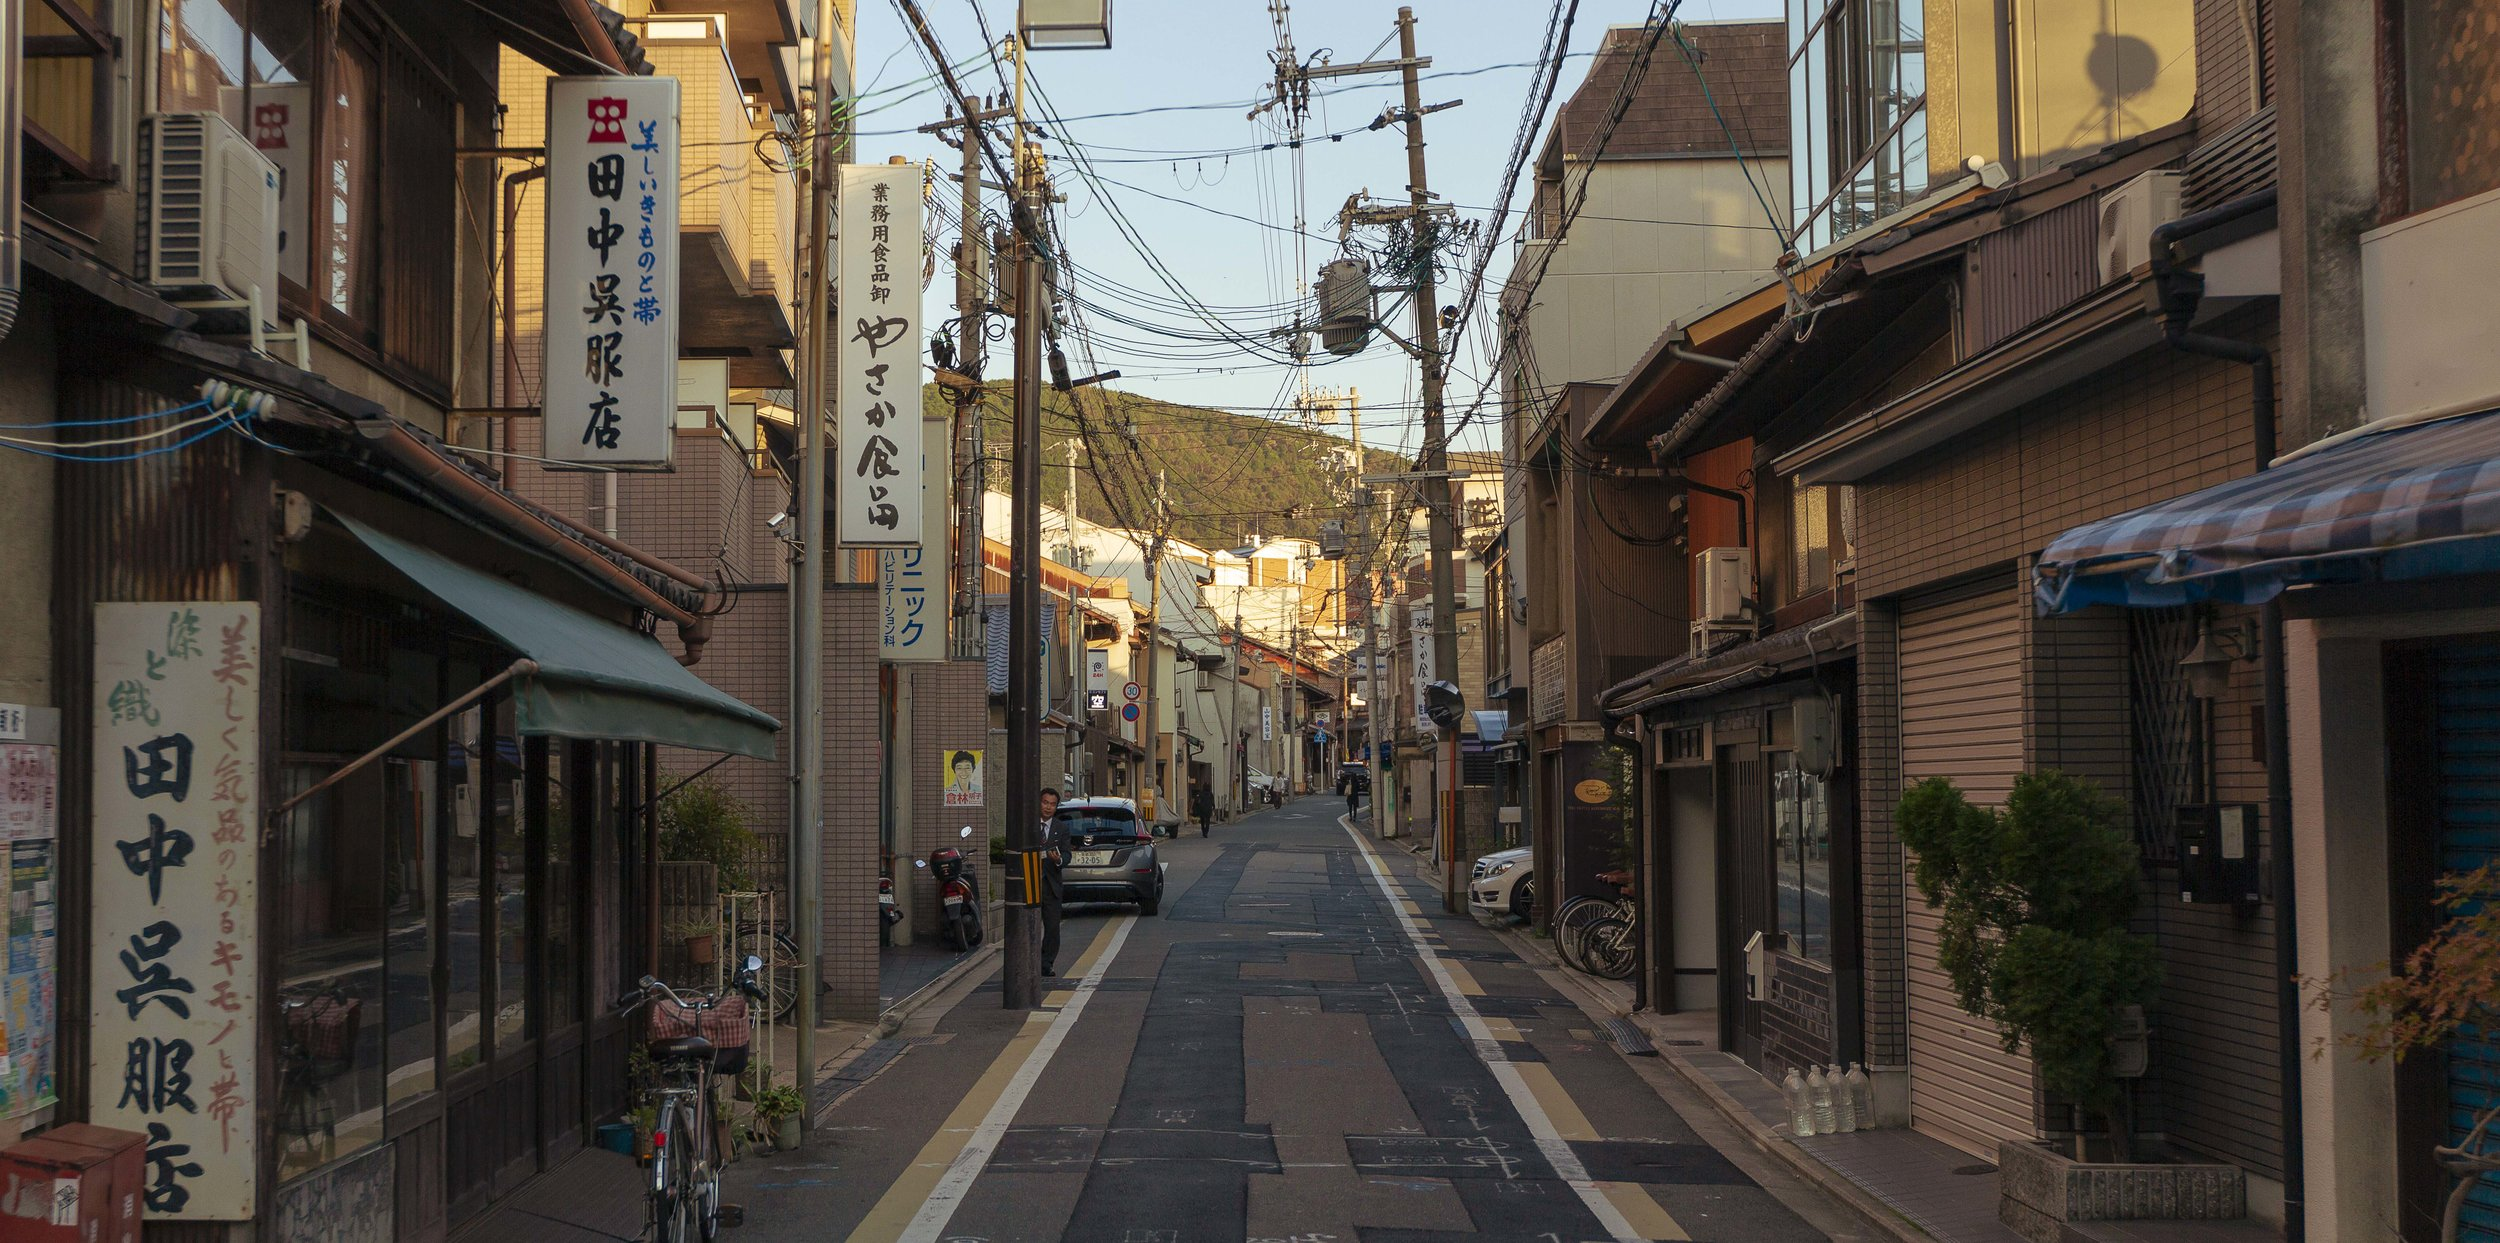 Wandering the streets of Kyoto